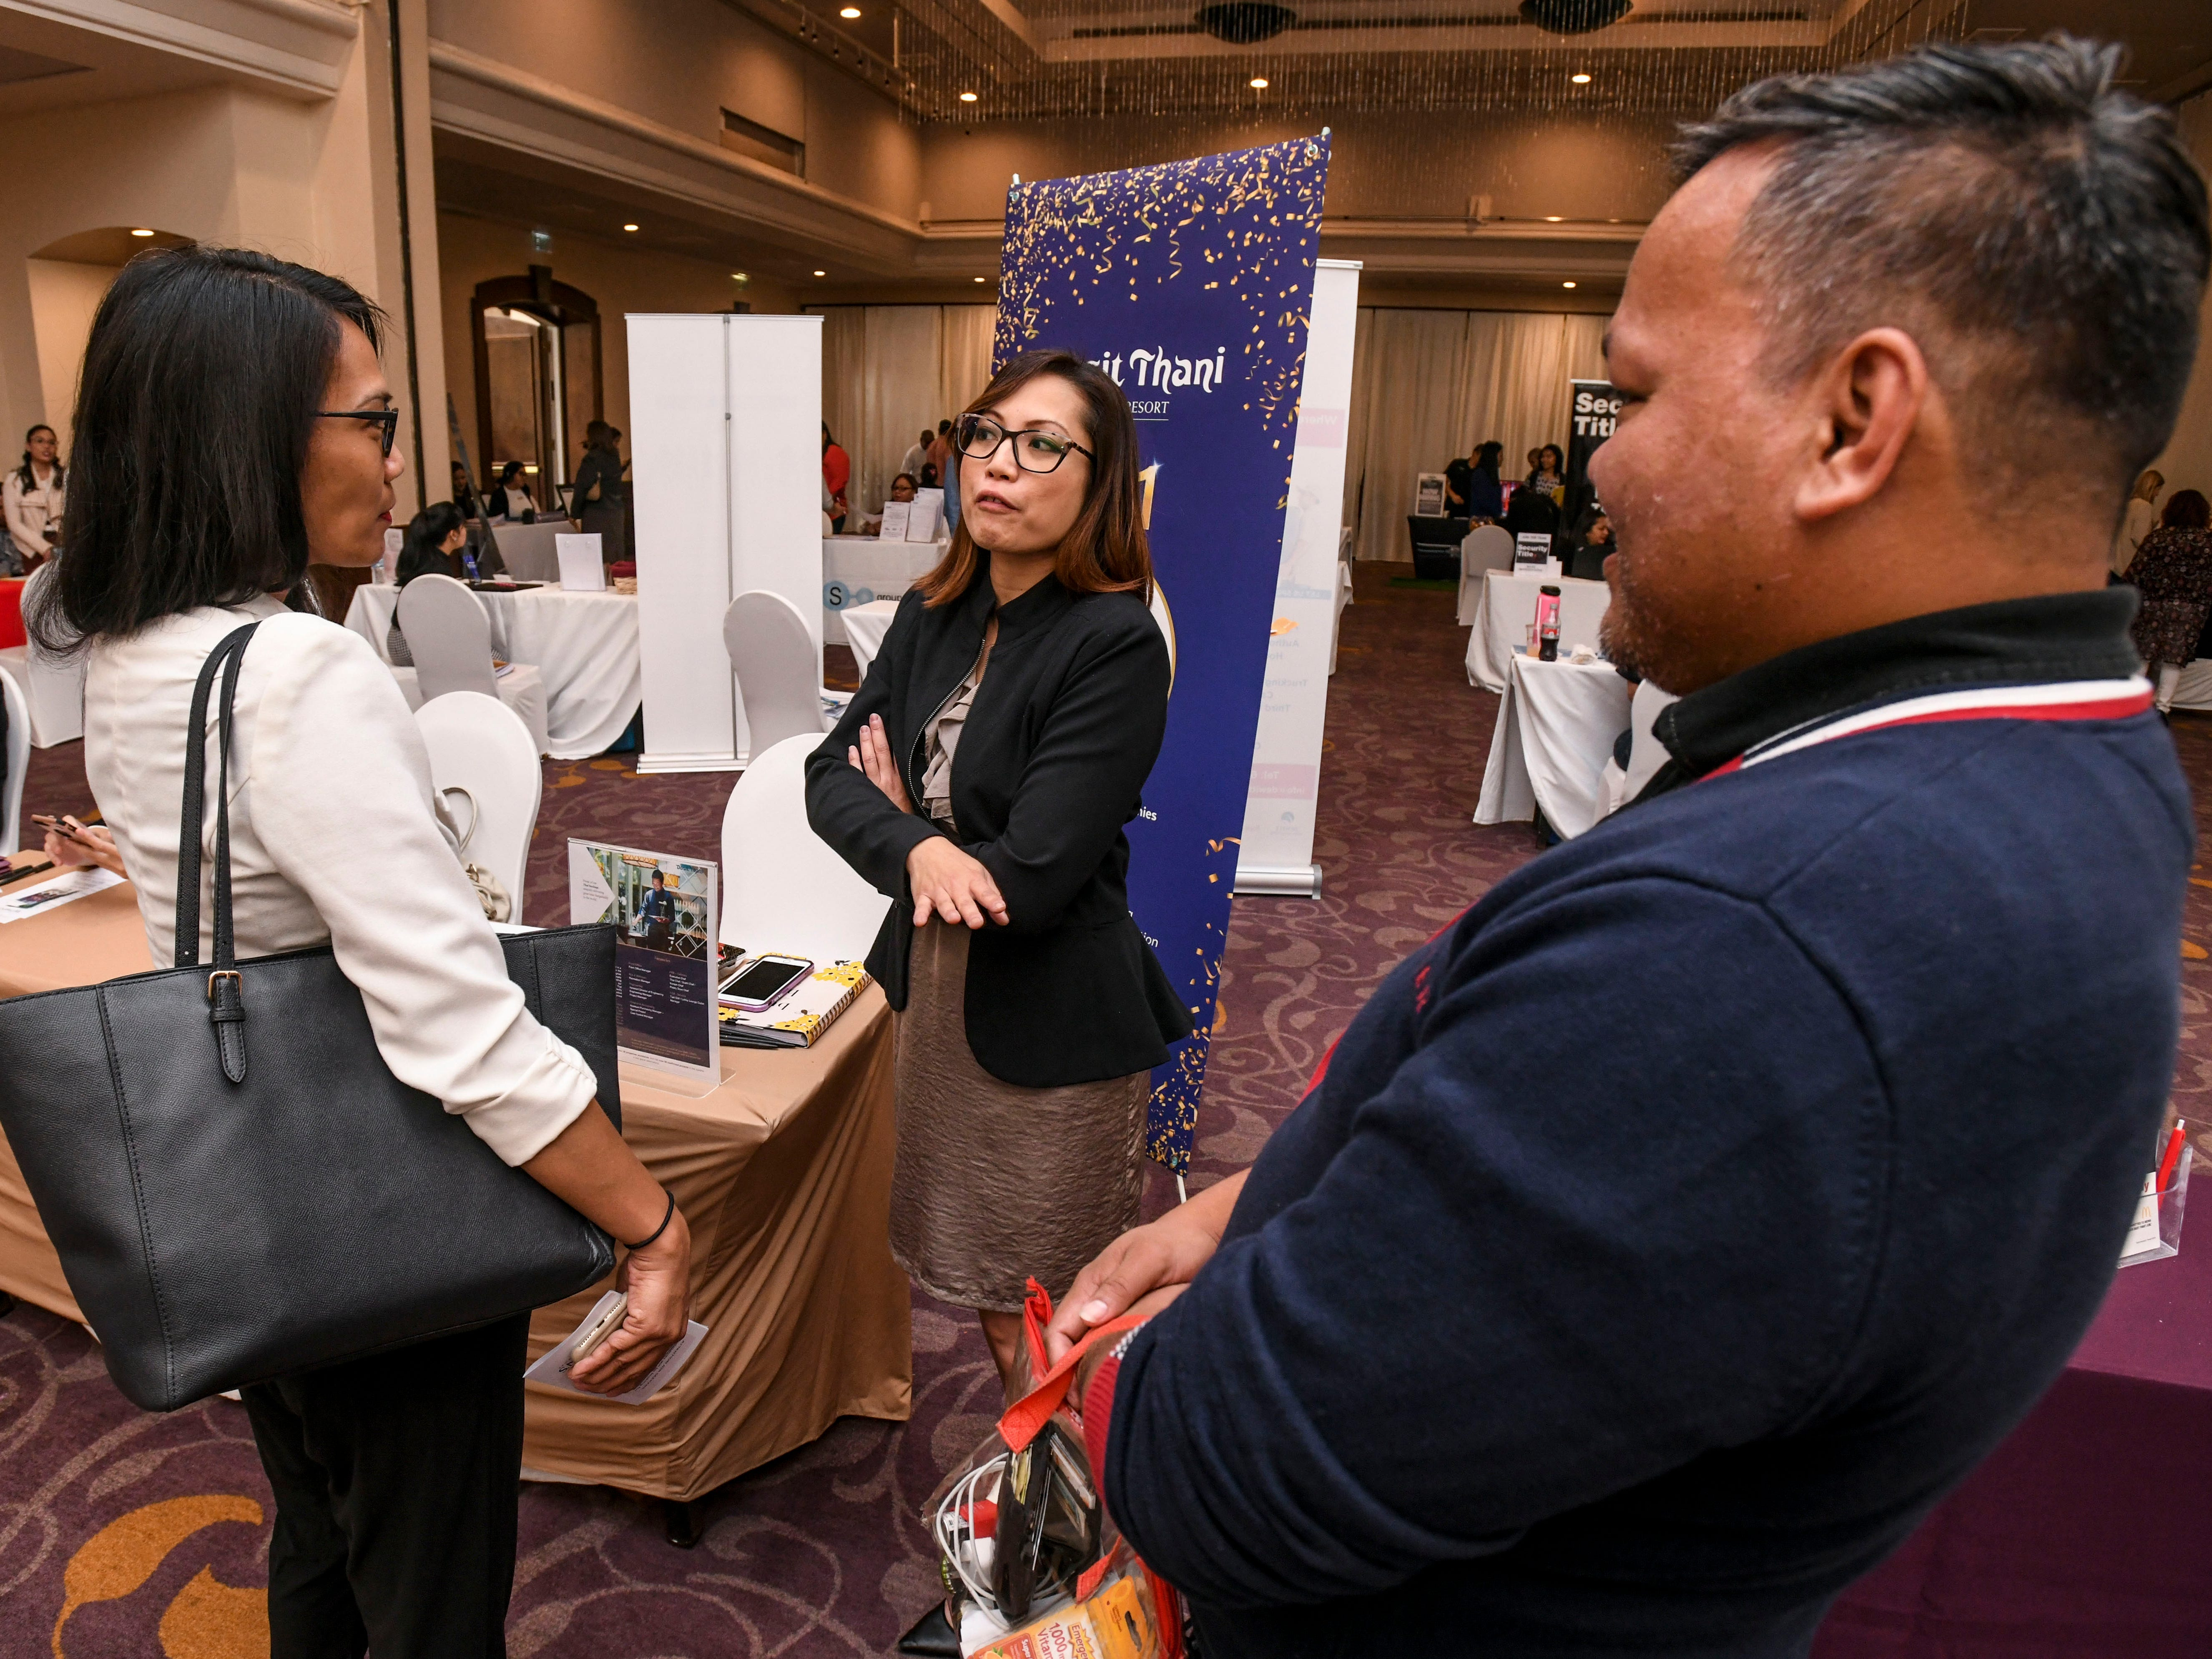 """Job seekers and prospective employers interact with one another during the Guam Chamber of Commerce's Women's Network 4th annual """"Propel Yourself"""" job fair at the Hyatt Regency Guam in Tumon on Friday, Feb. 8, 2019."""